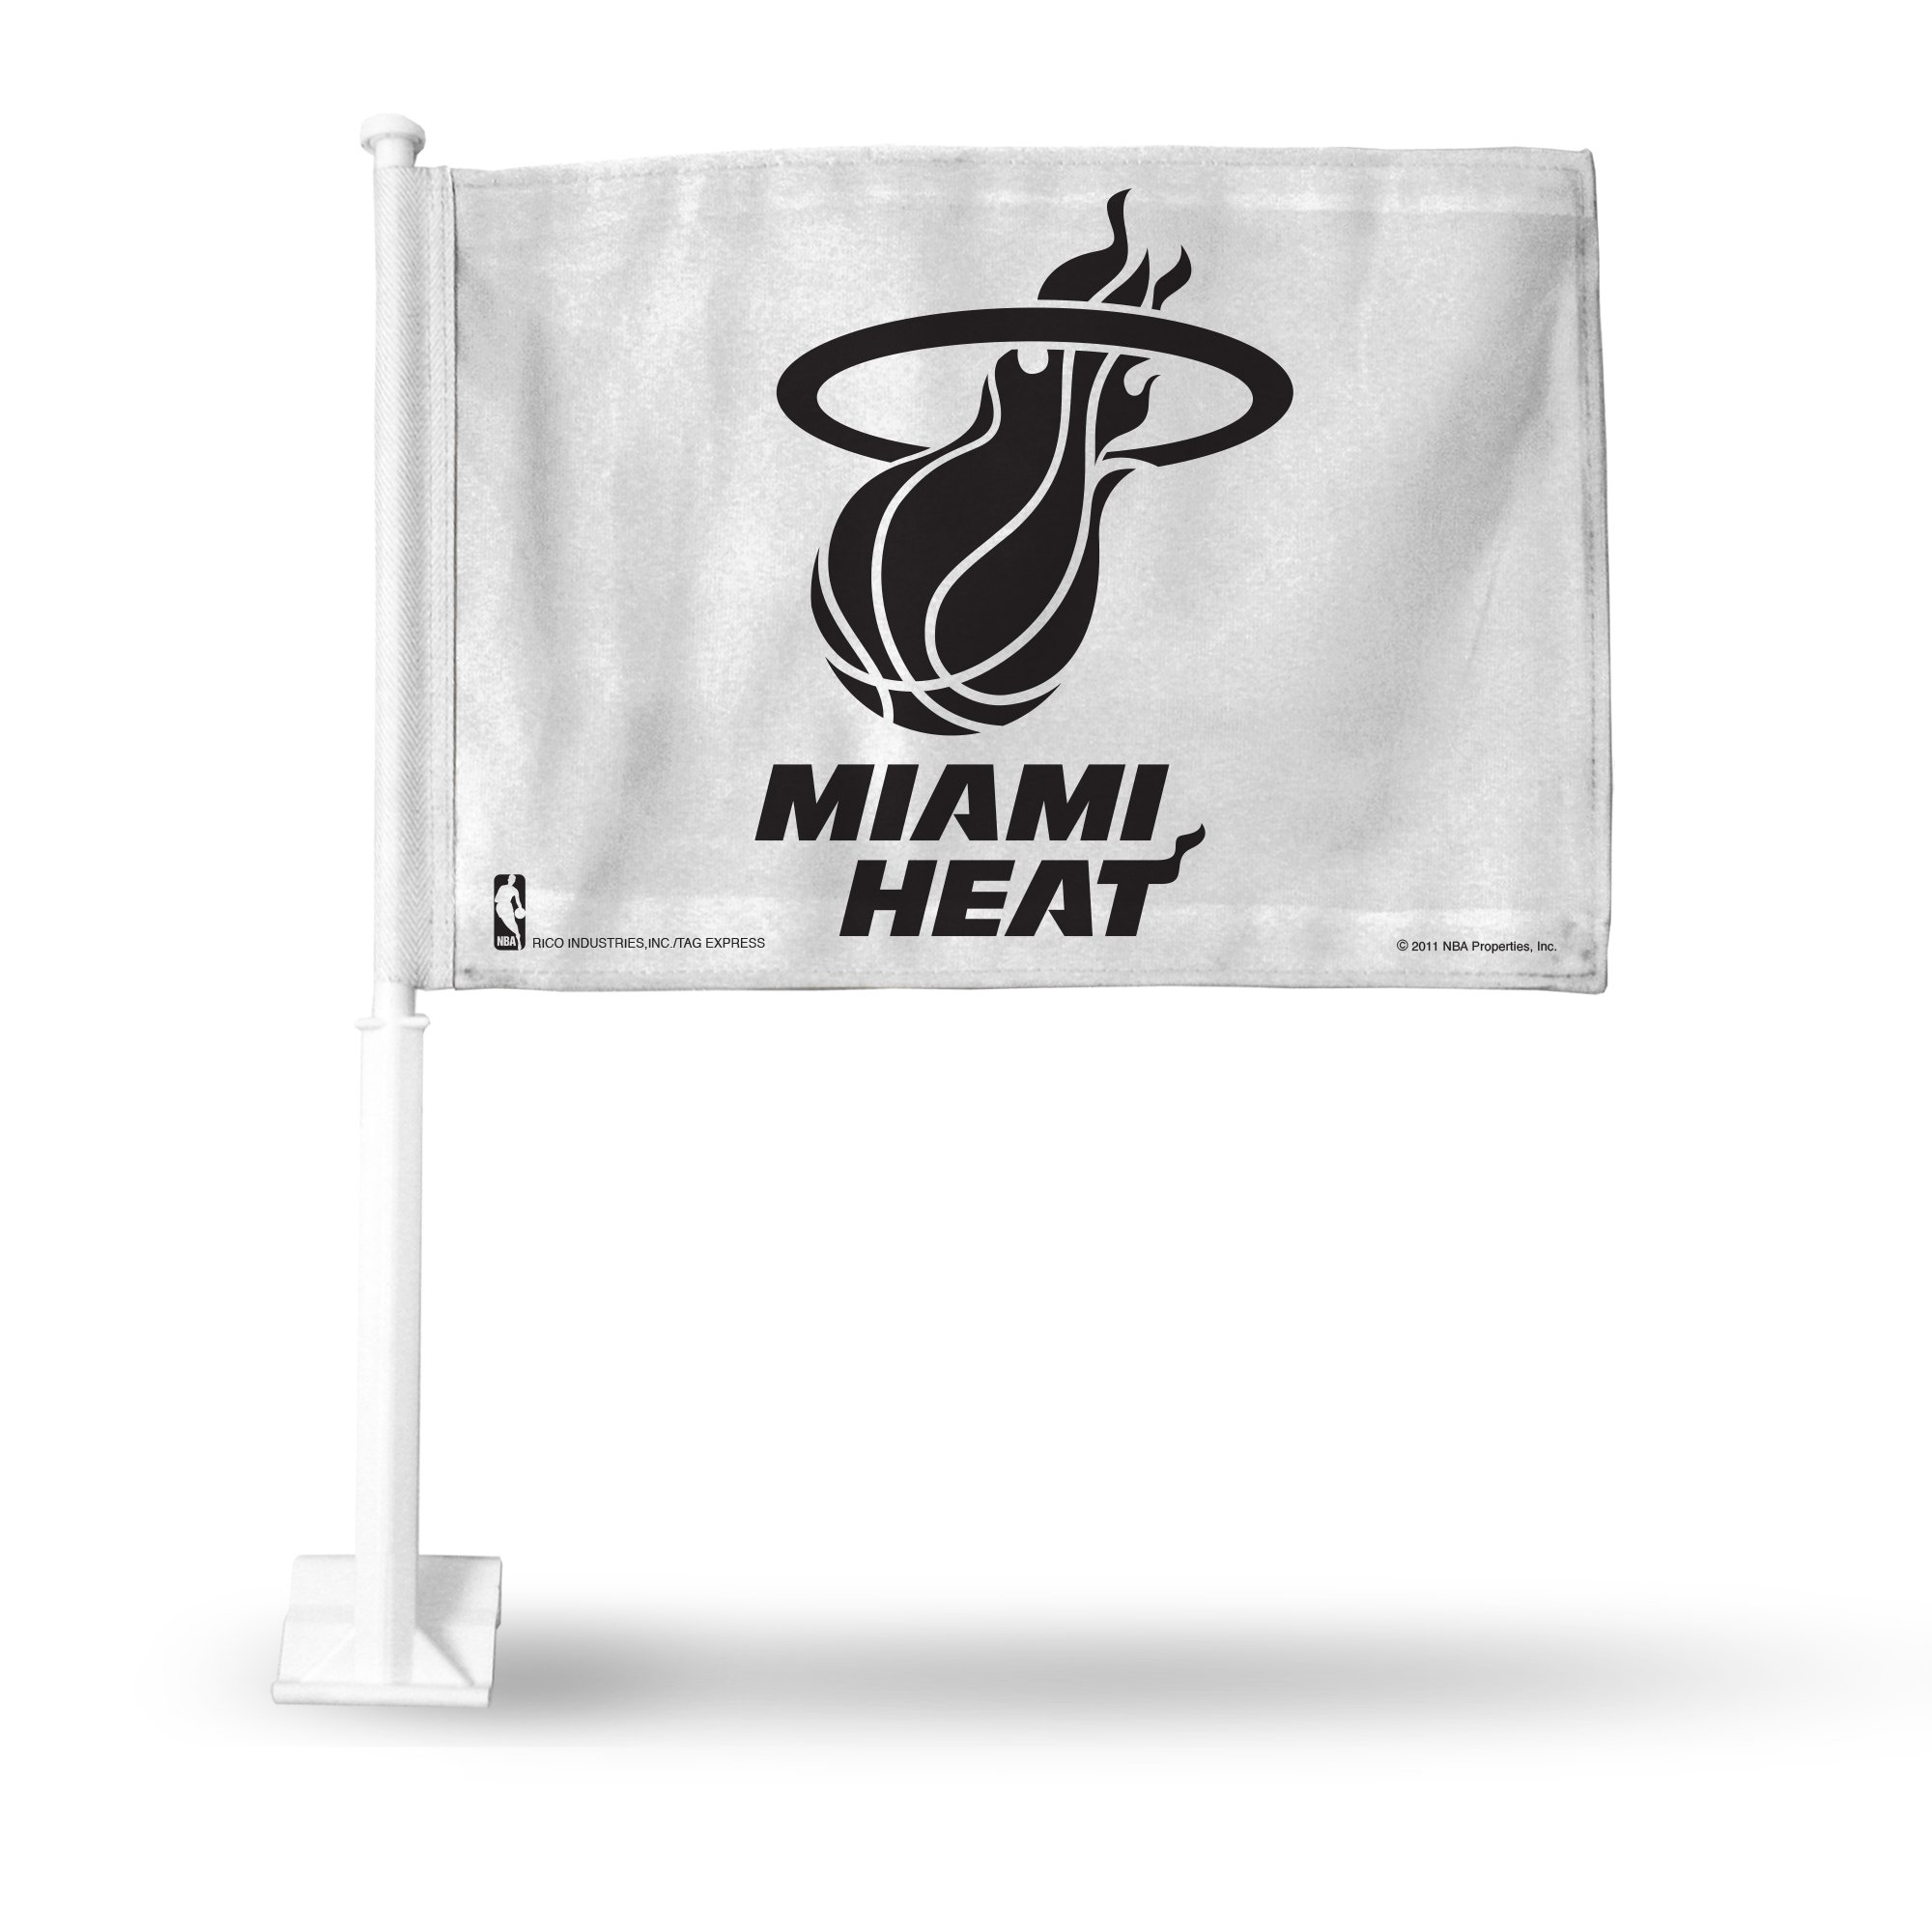 Rico NBA Miami Heat Car Flag, White, with White Pole